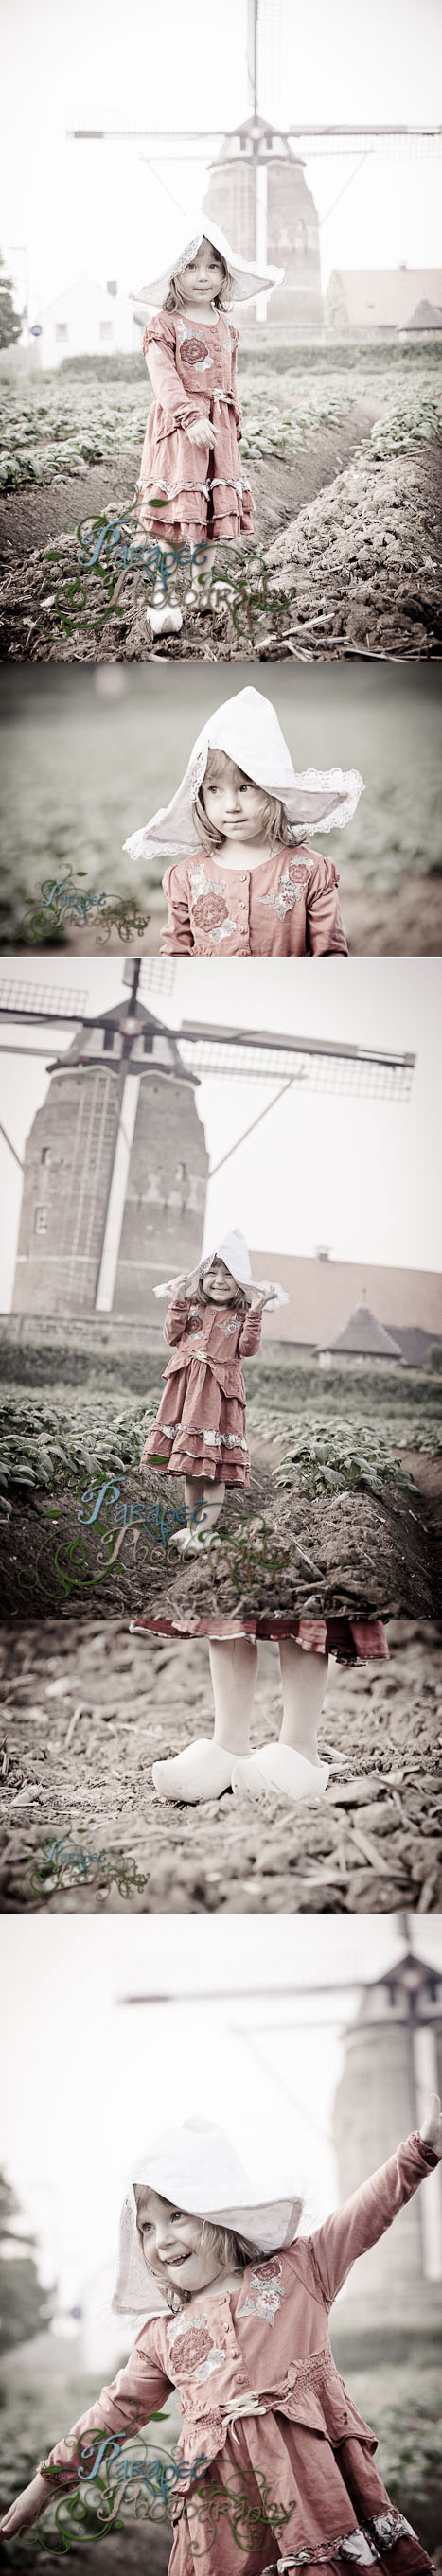 A short guide on how to do a little Dutch Girl themed photoshoot from findingstorybookland.com.